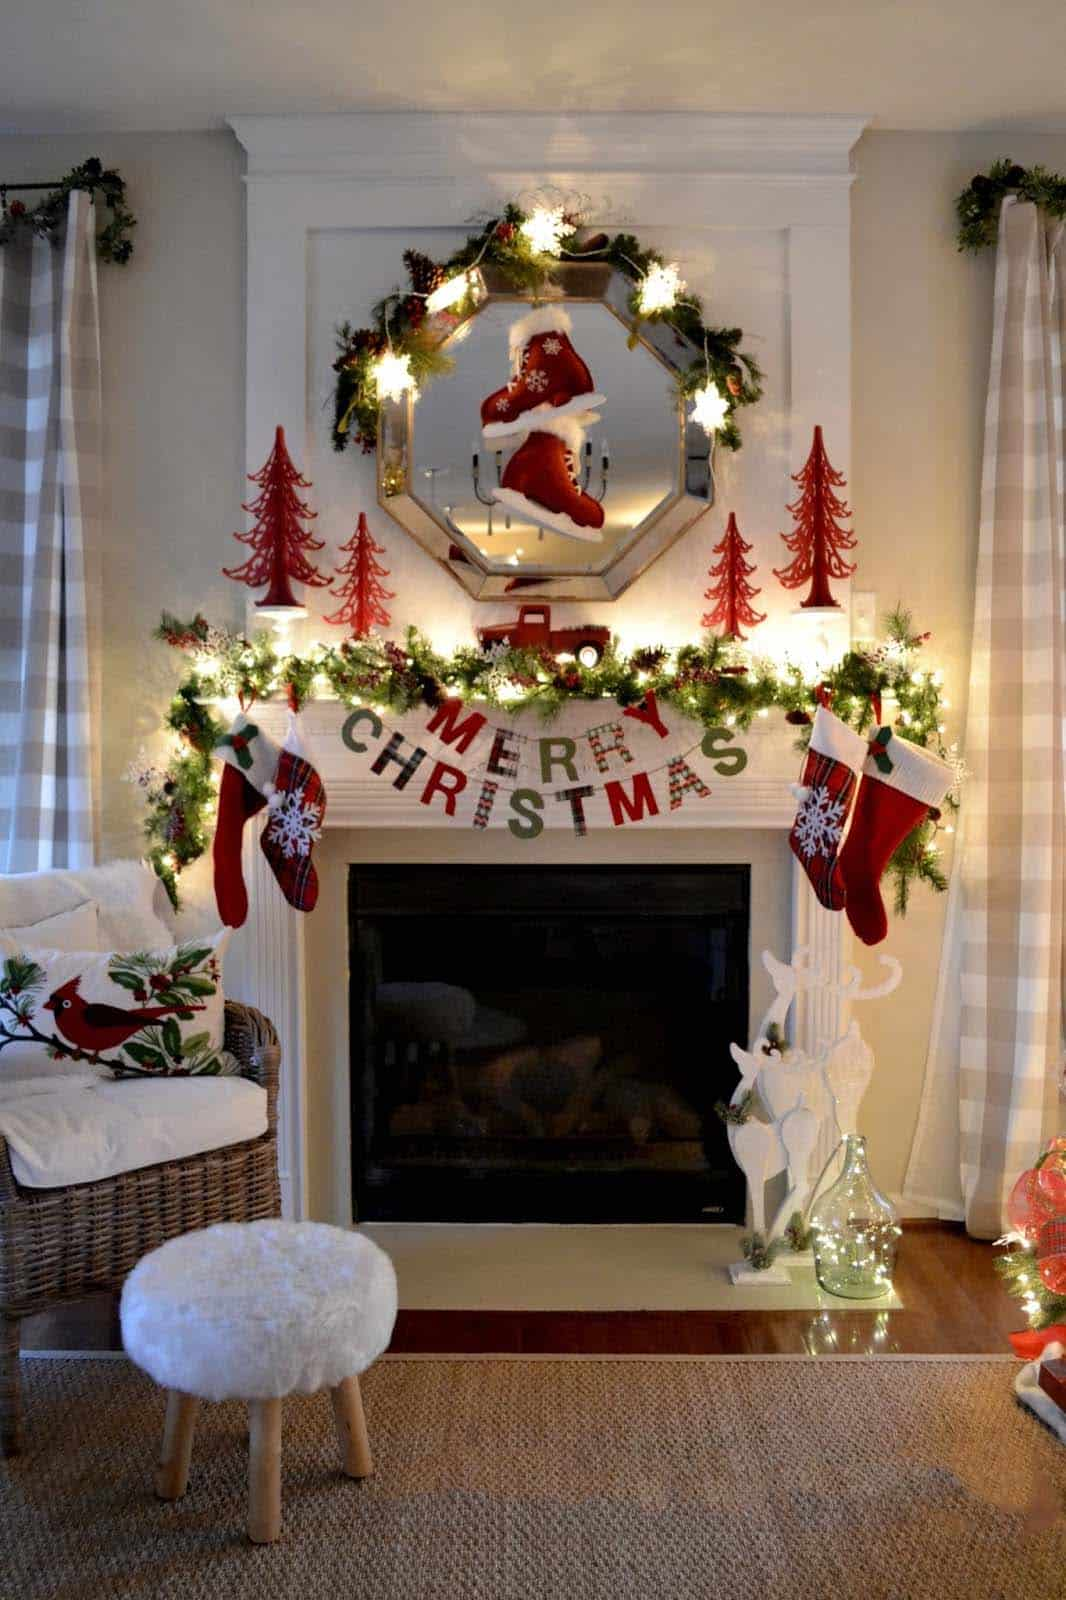 Uncategorized Christmas Decorated Living Room 30 fabulous christmas decorated living rooms to inspire 05 1 kindesign